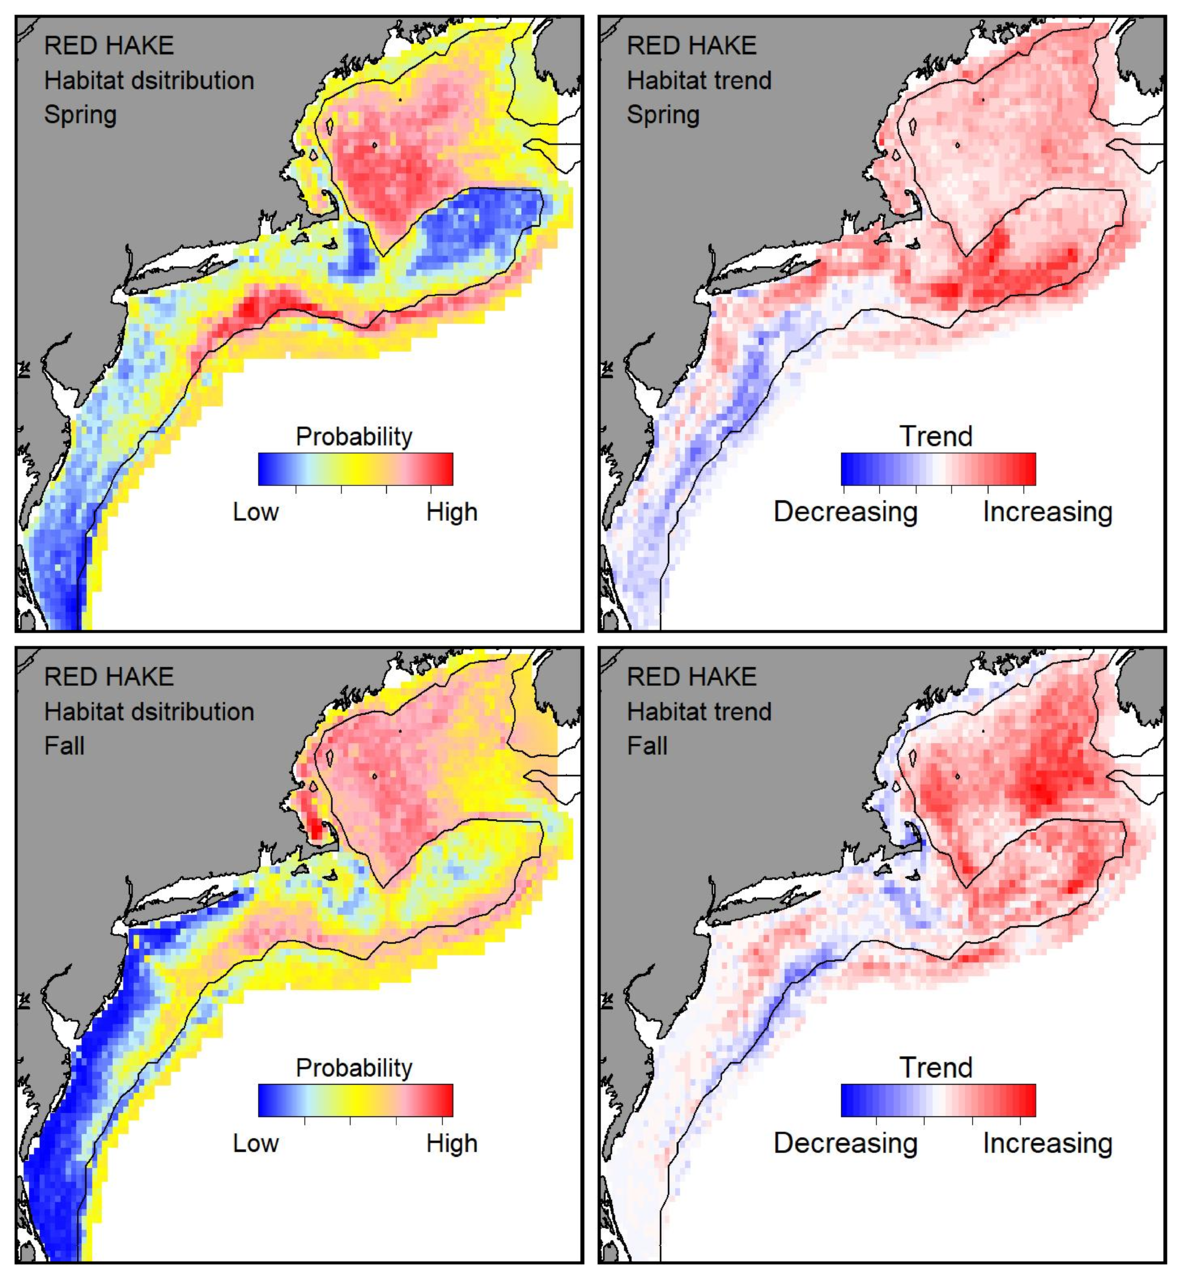 Top row: Probable habitat distribution for red hake showing the highest concentration and increasing trend in the Gulf of Maine during the spring. Bottom row: Probable habitat distribution for red hake showing the highest concentration and increasing trend in the Gulf of Maine during the fall.